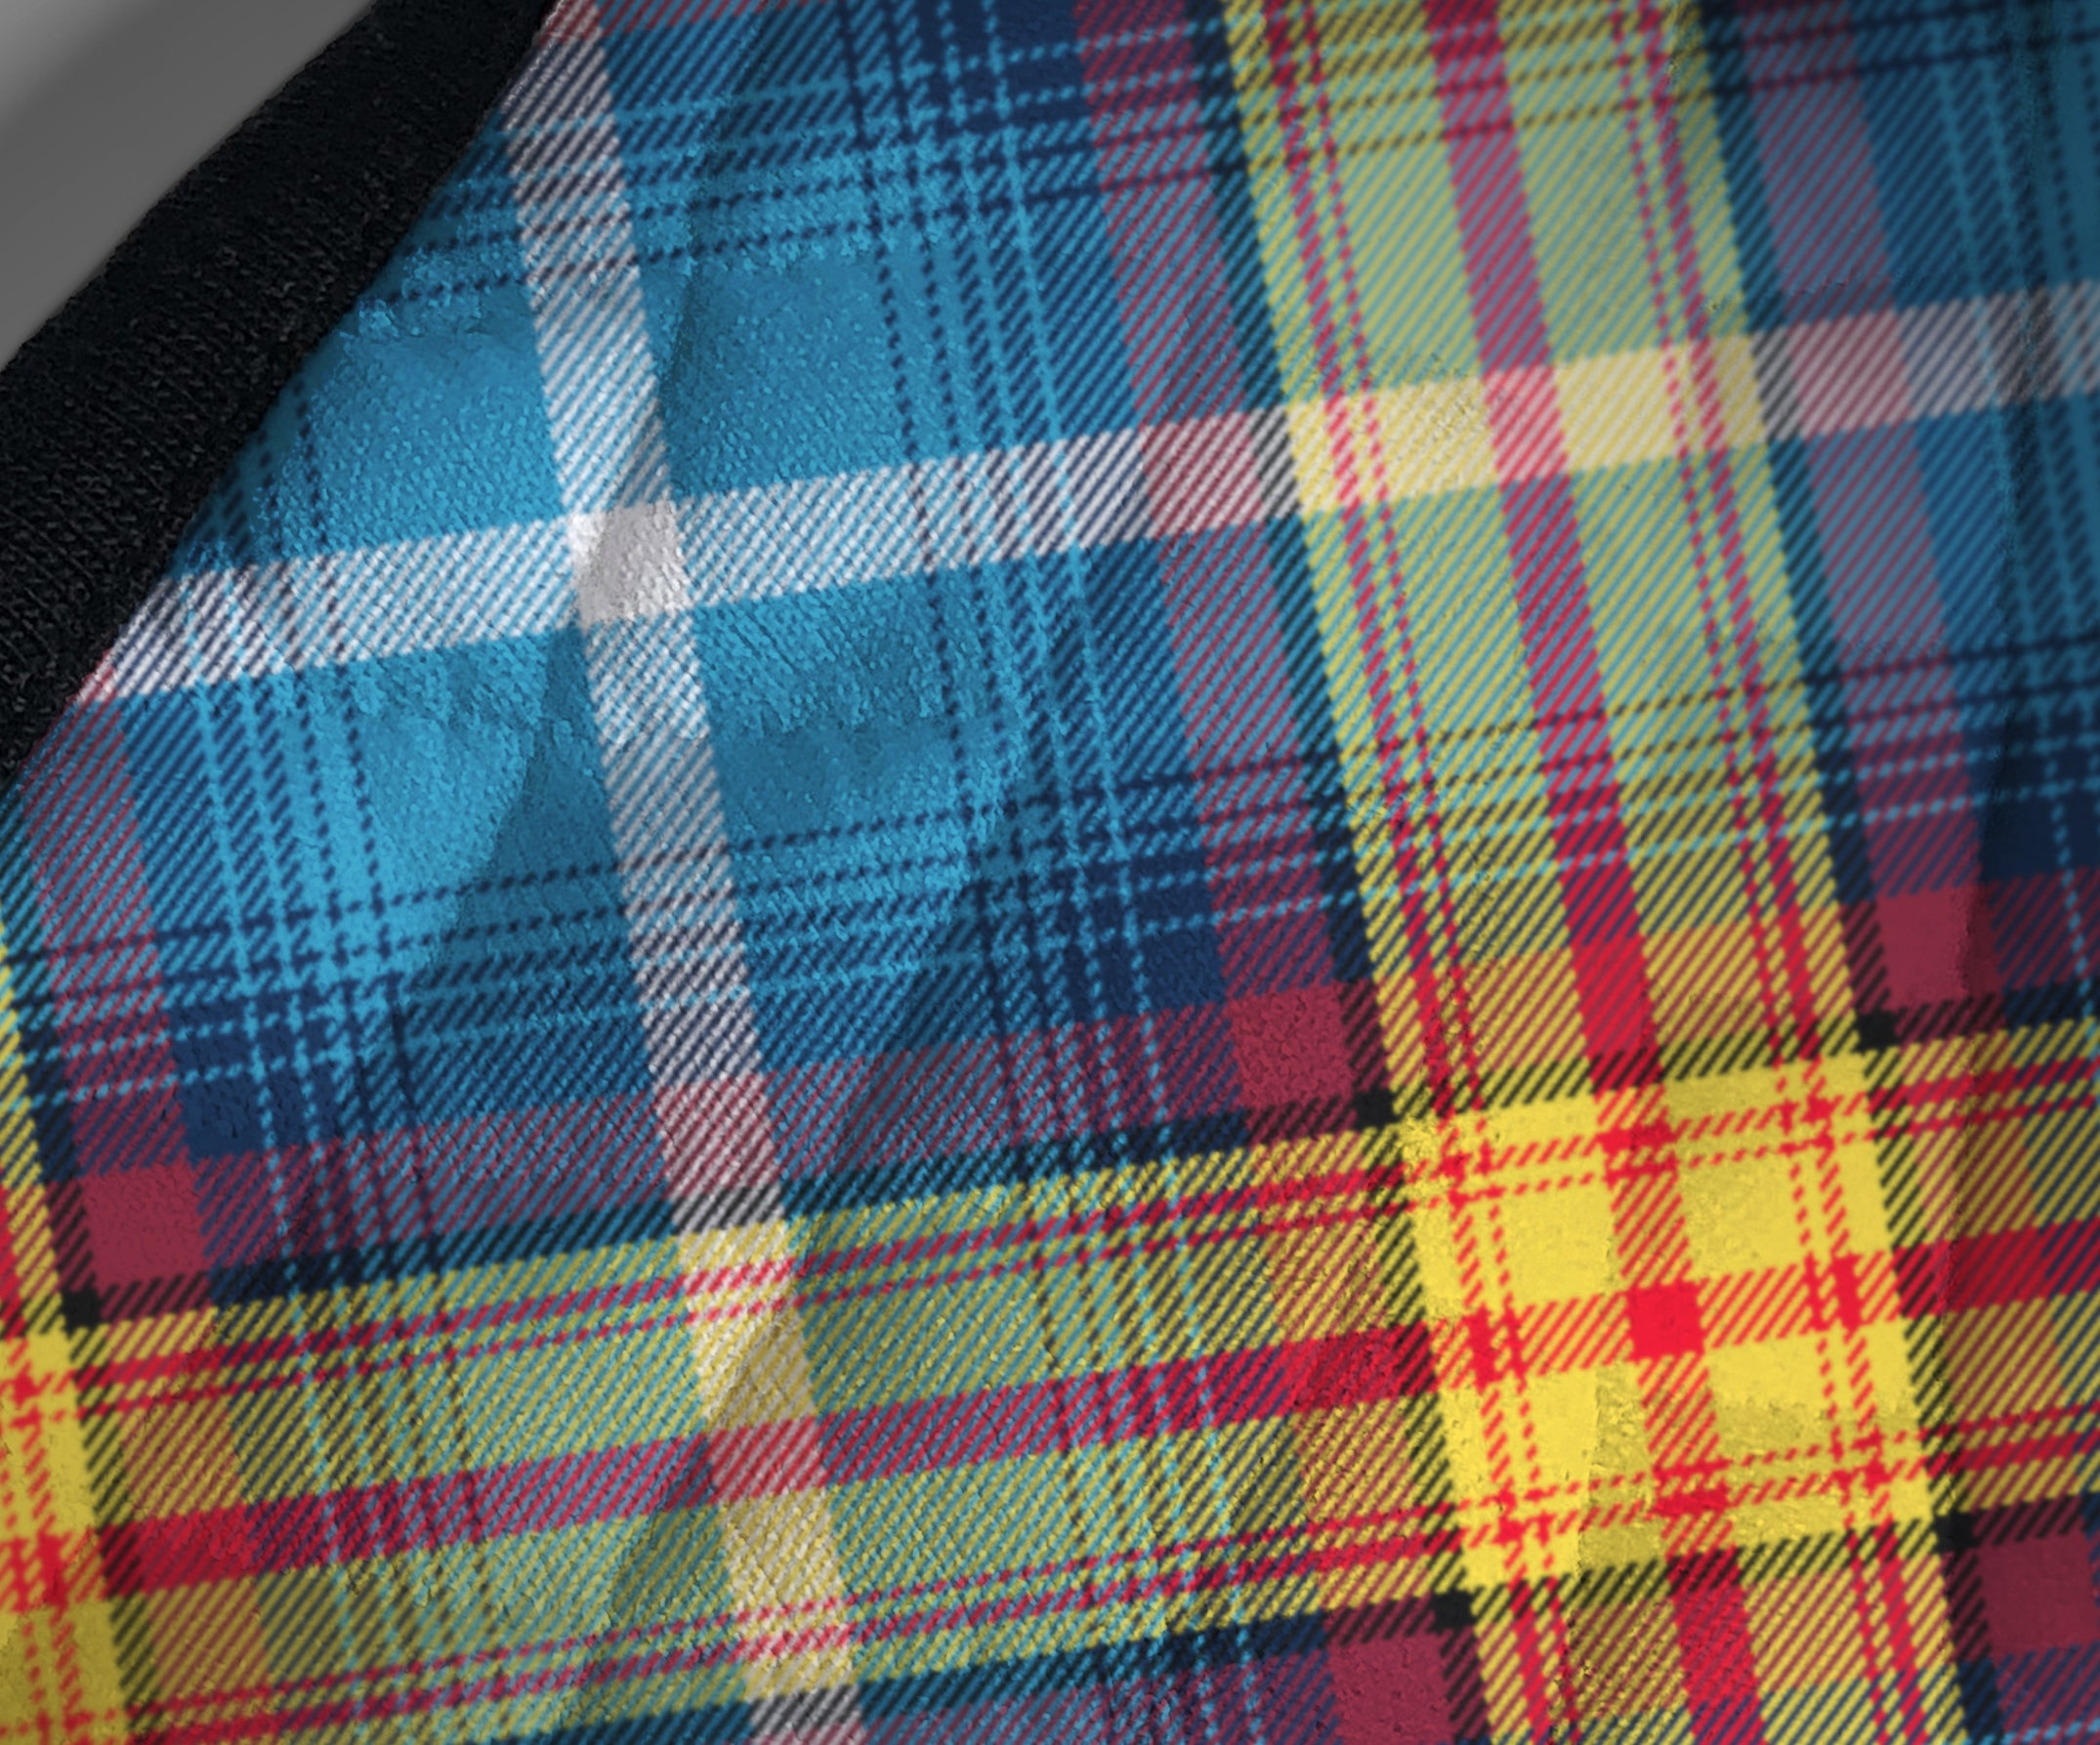 The Declaration of Scottish Independence Arbroath 6th April 1320 Contoured Tartan - Nicola Sturgeon - Scottish Saltire - Face Mask - exclusively produced by Steven Patrick Sim the Tartan Artisan - fabric